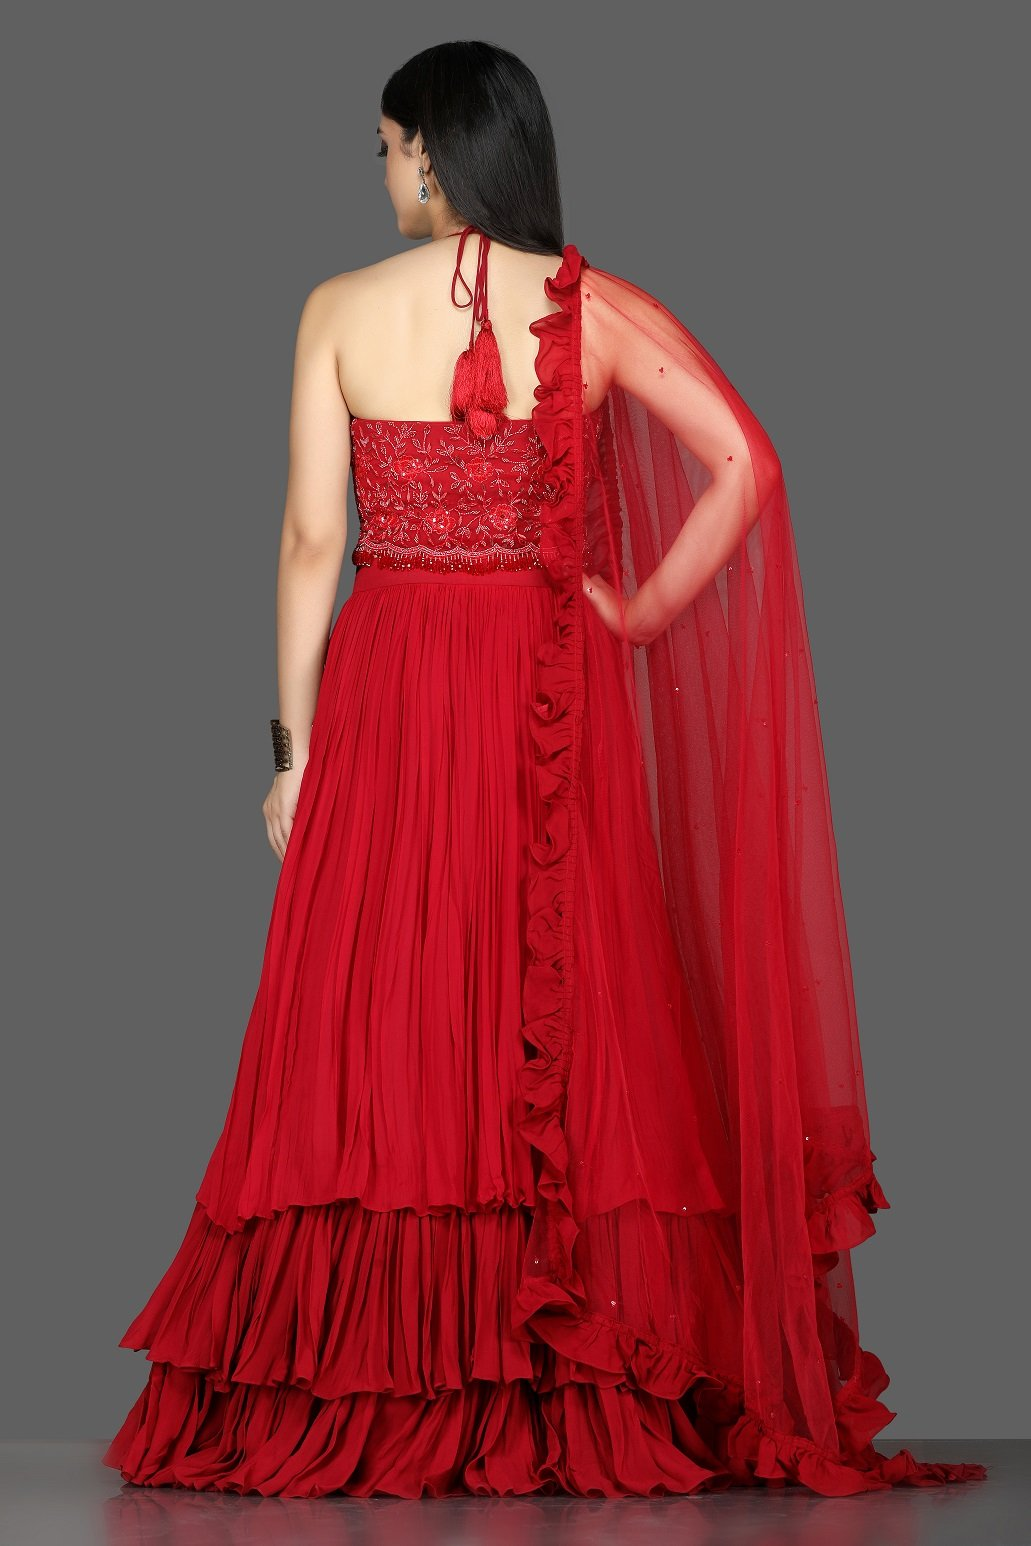 Buy gorgeous red embroidered layered georgette lehenga online in USA with ruffle dupatta. Flaunt ethnic fashion with exquisite designer lehenga, Indian wedding dresses from Pure Elegance Indian fashion boutique in USA.-back